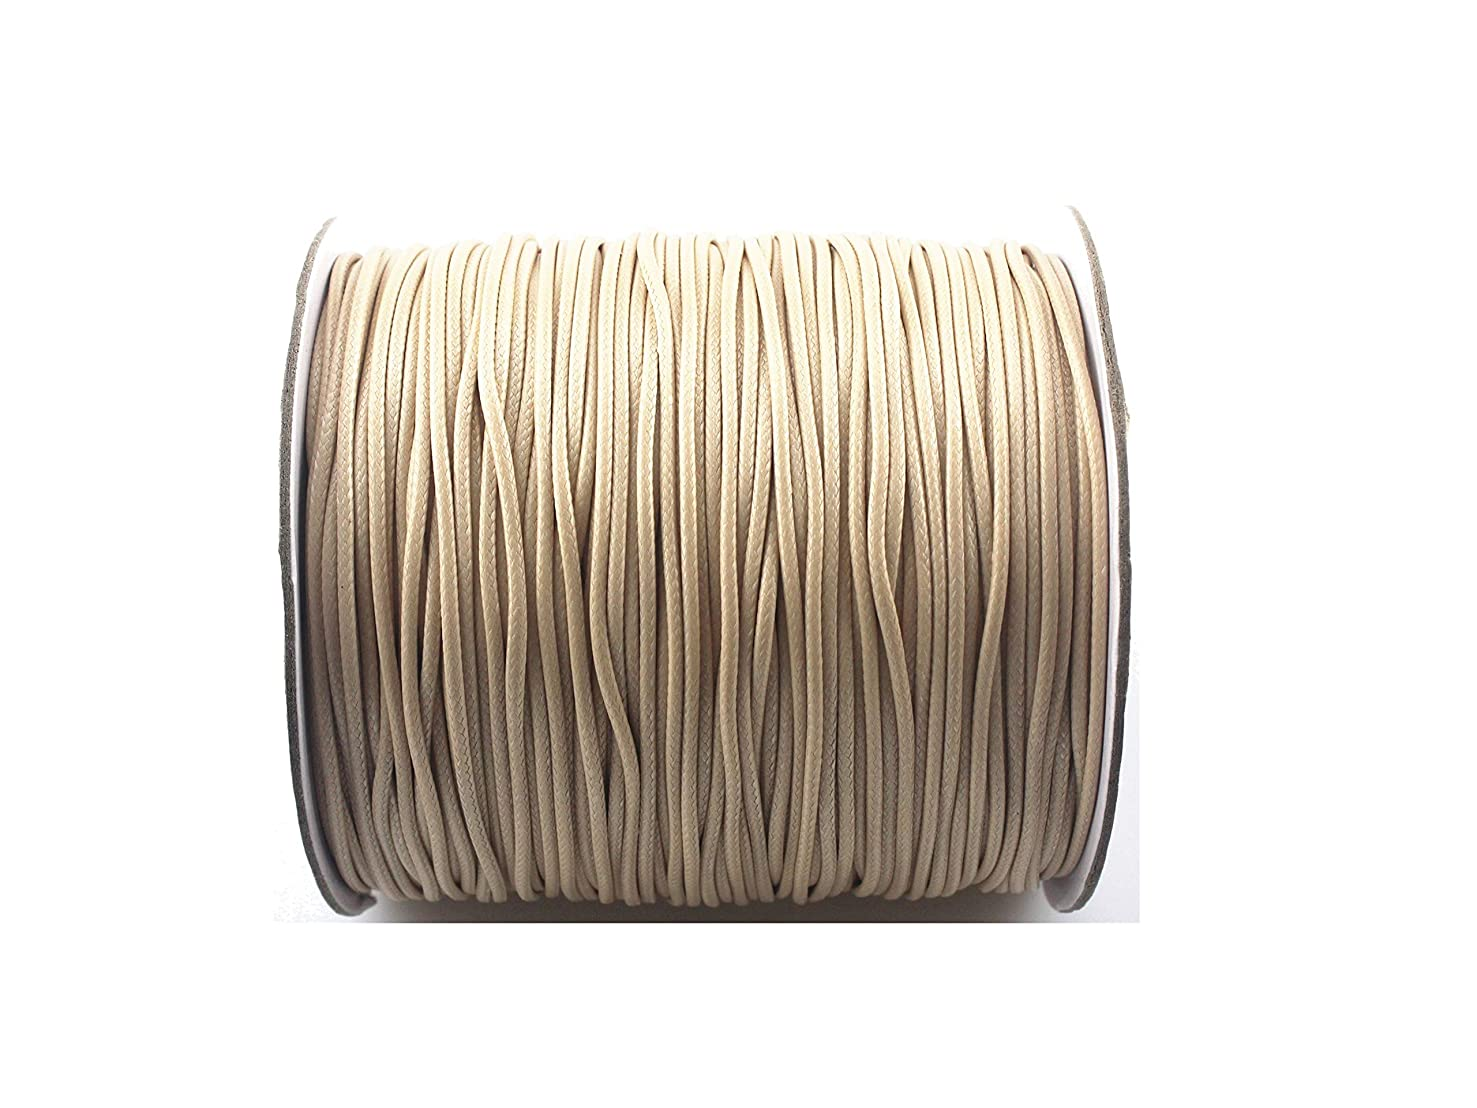 QIANHAILIZZ 200 Yards 1.5 mm Waxed Jewelry Making Cord Waxed Beading String Craft DIY Thread (Natural)